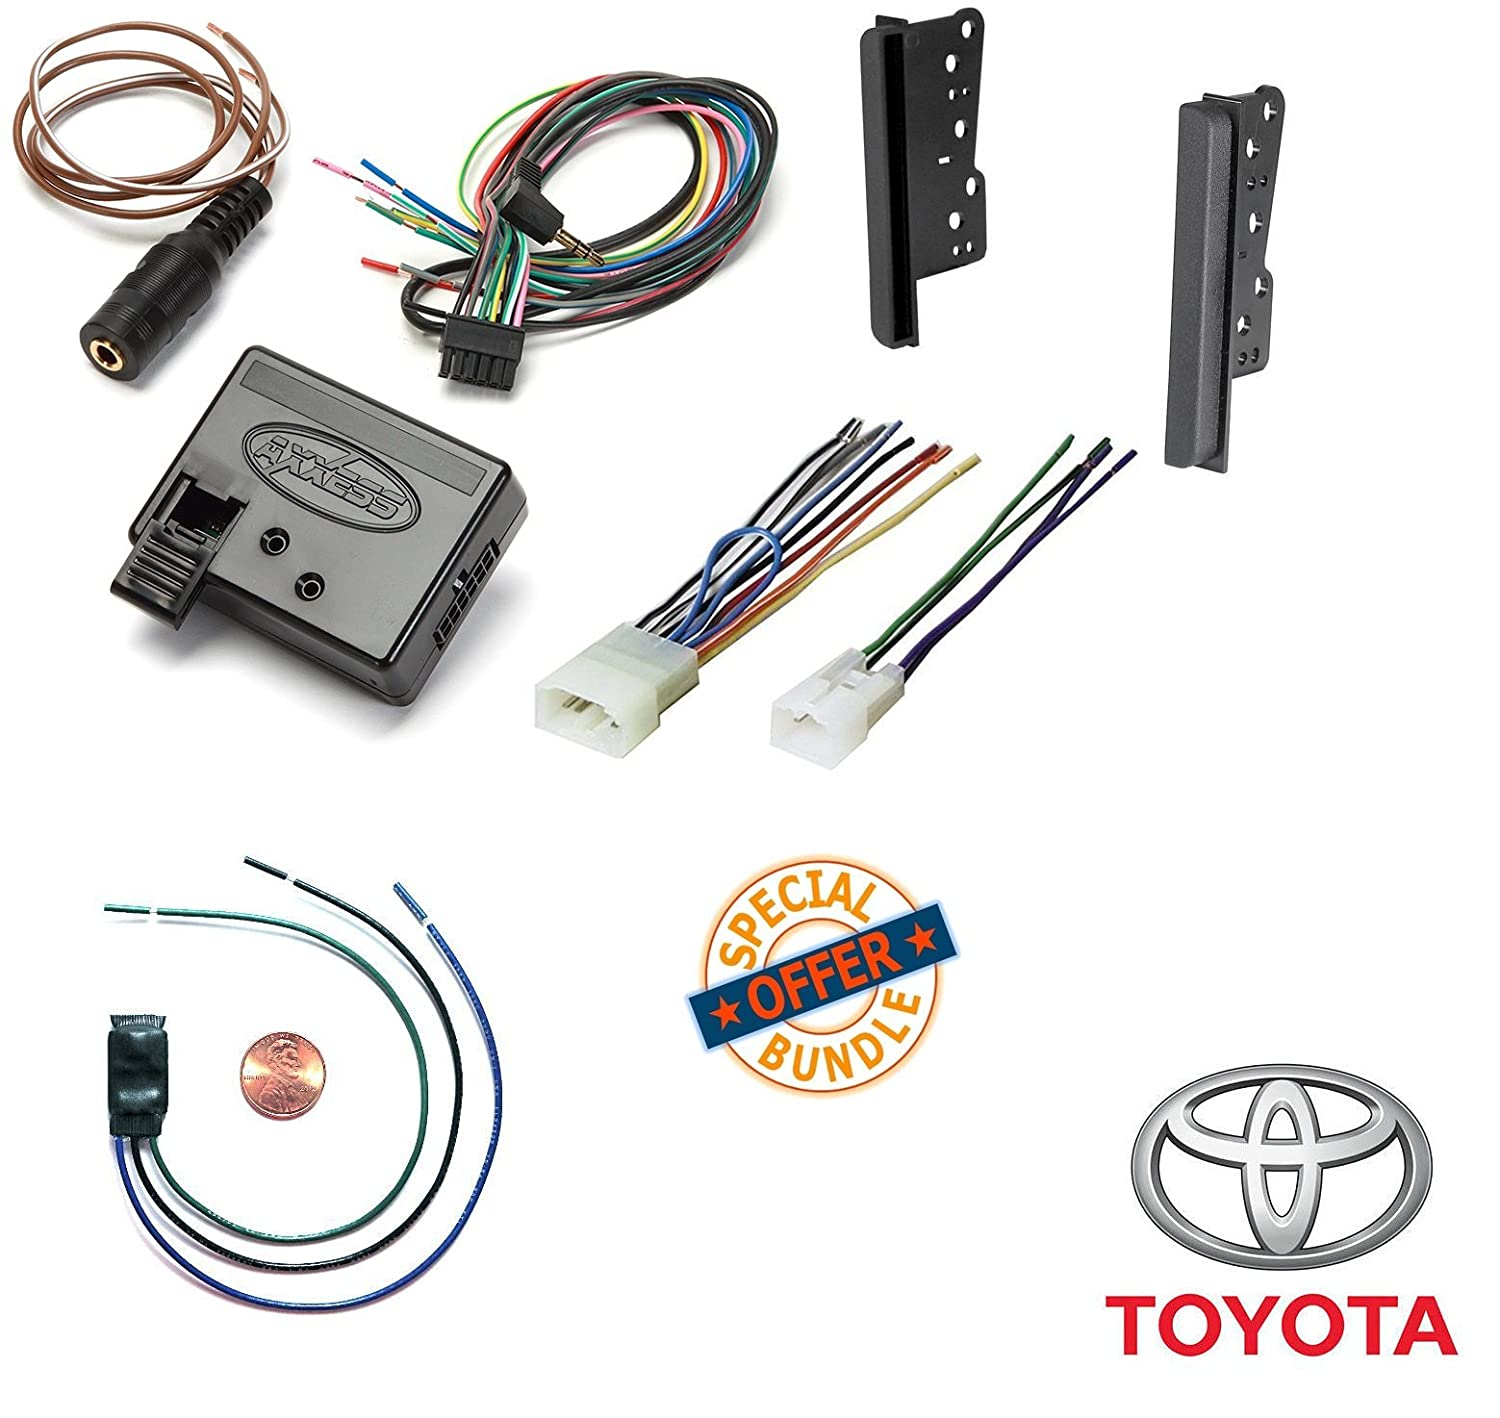 Amazon.com: Double Din Installation Dash Kit for 2001-2011 Toyota ...